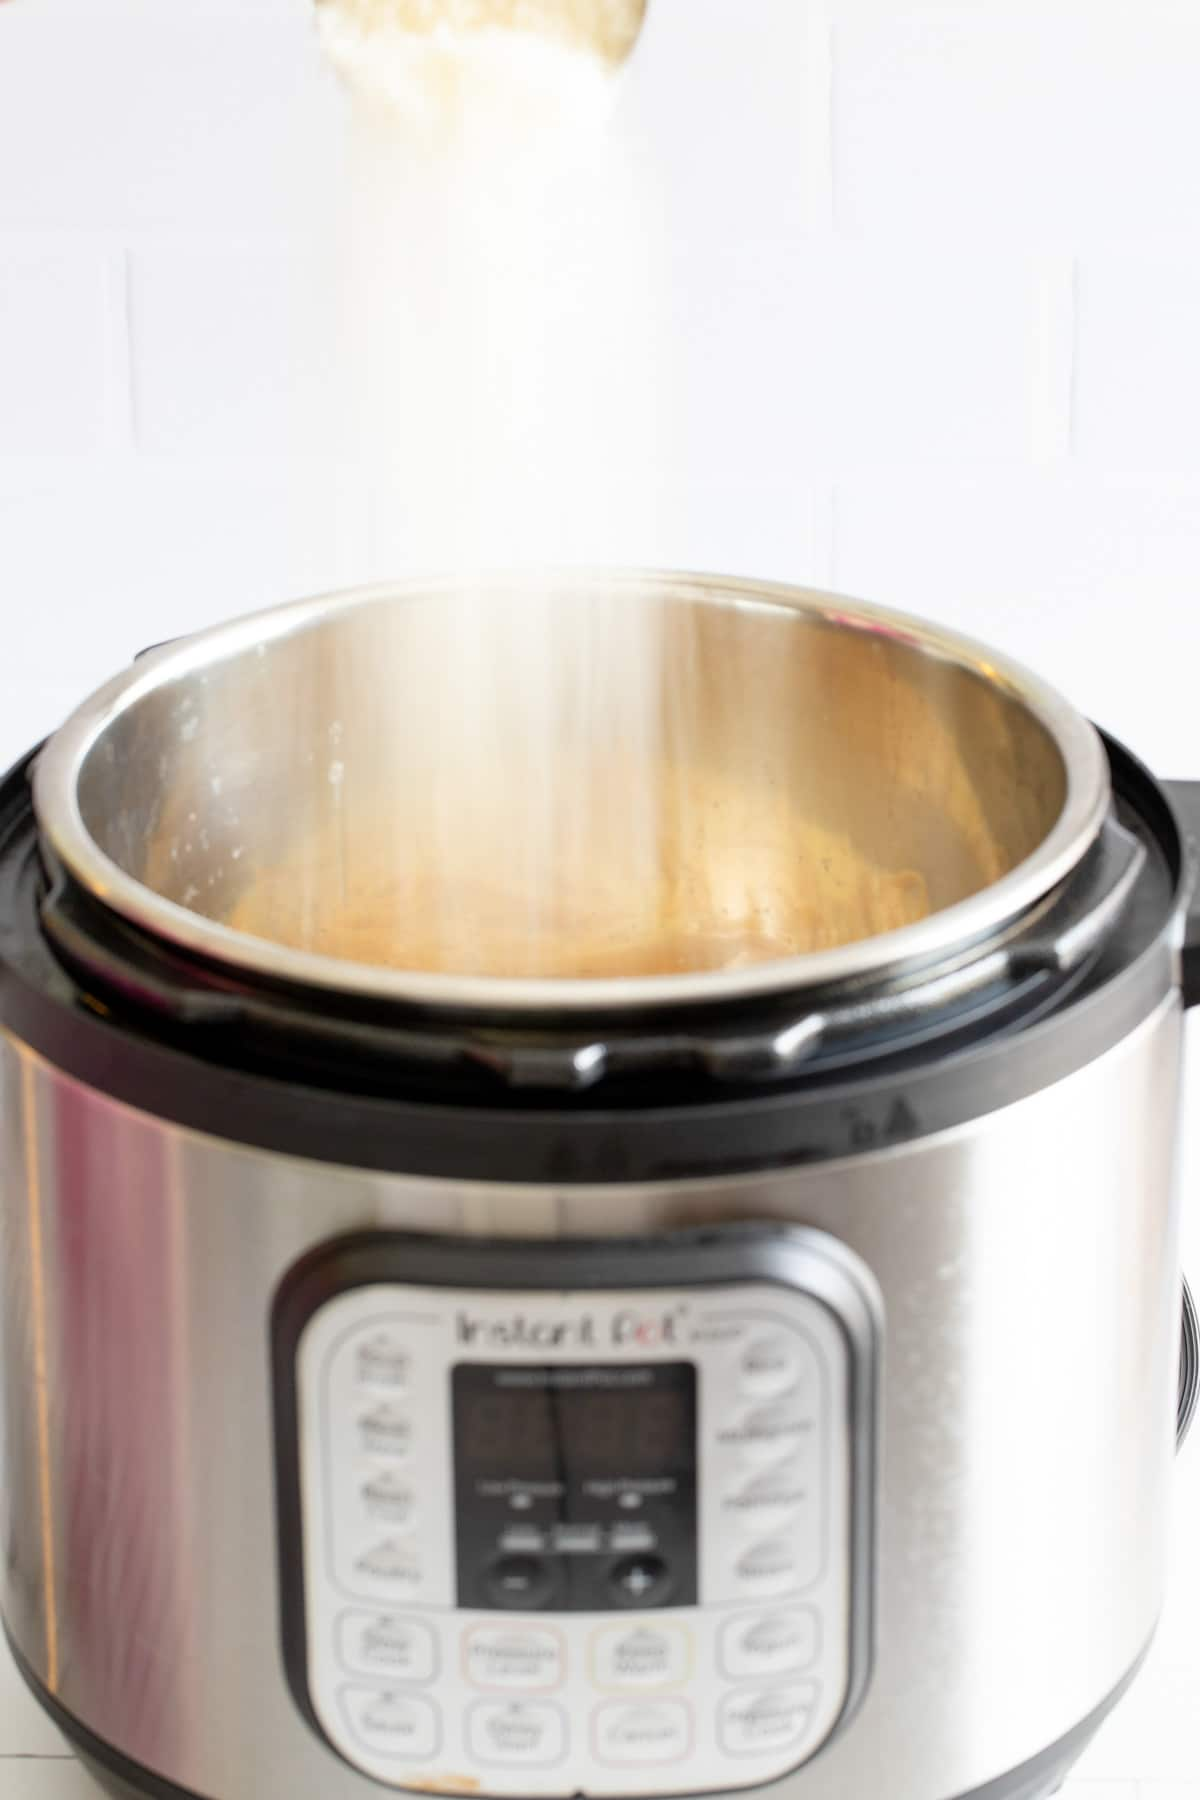 A hand putting cheese into an Instant Pot